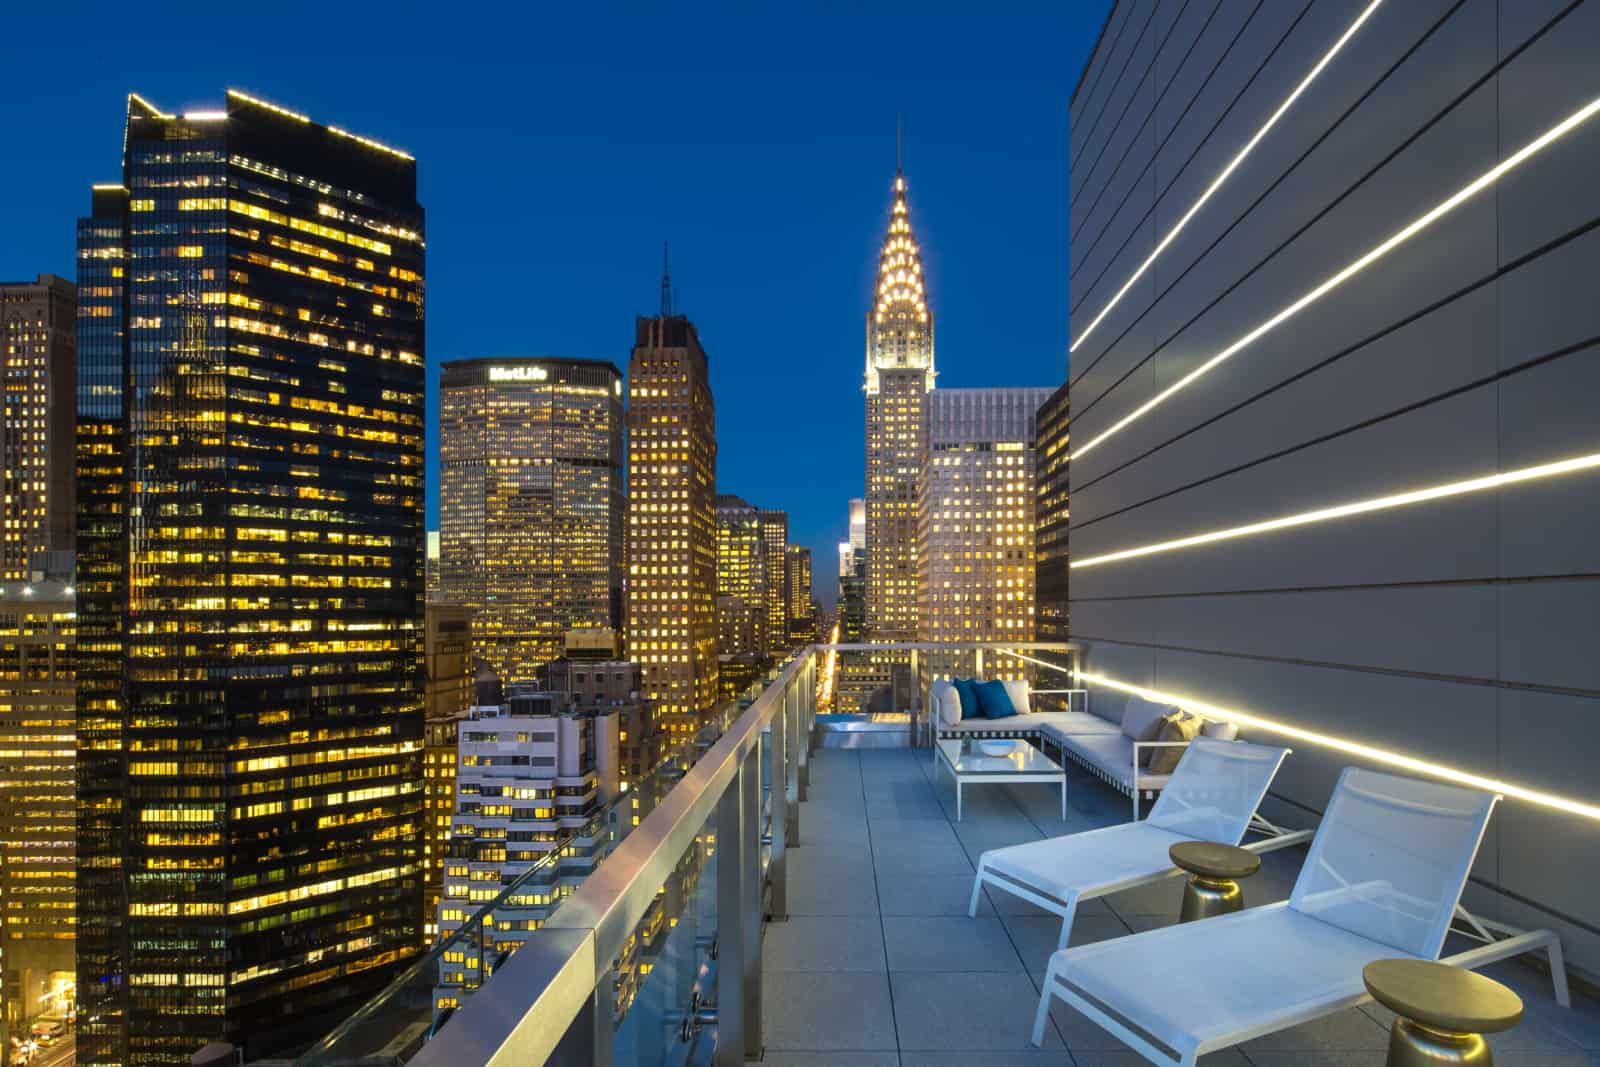 Exterior of large balcony with seating amidst downtown New York skyscrapers.